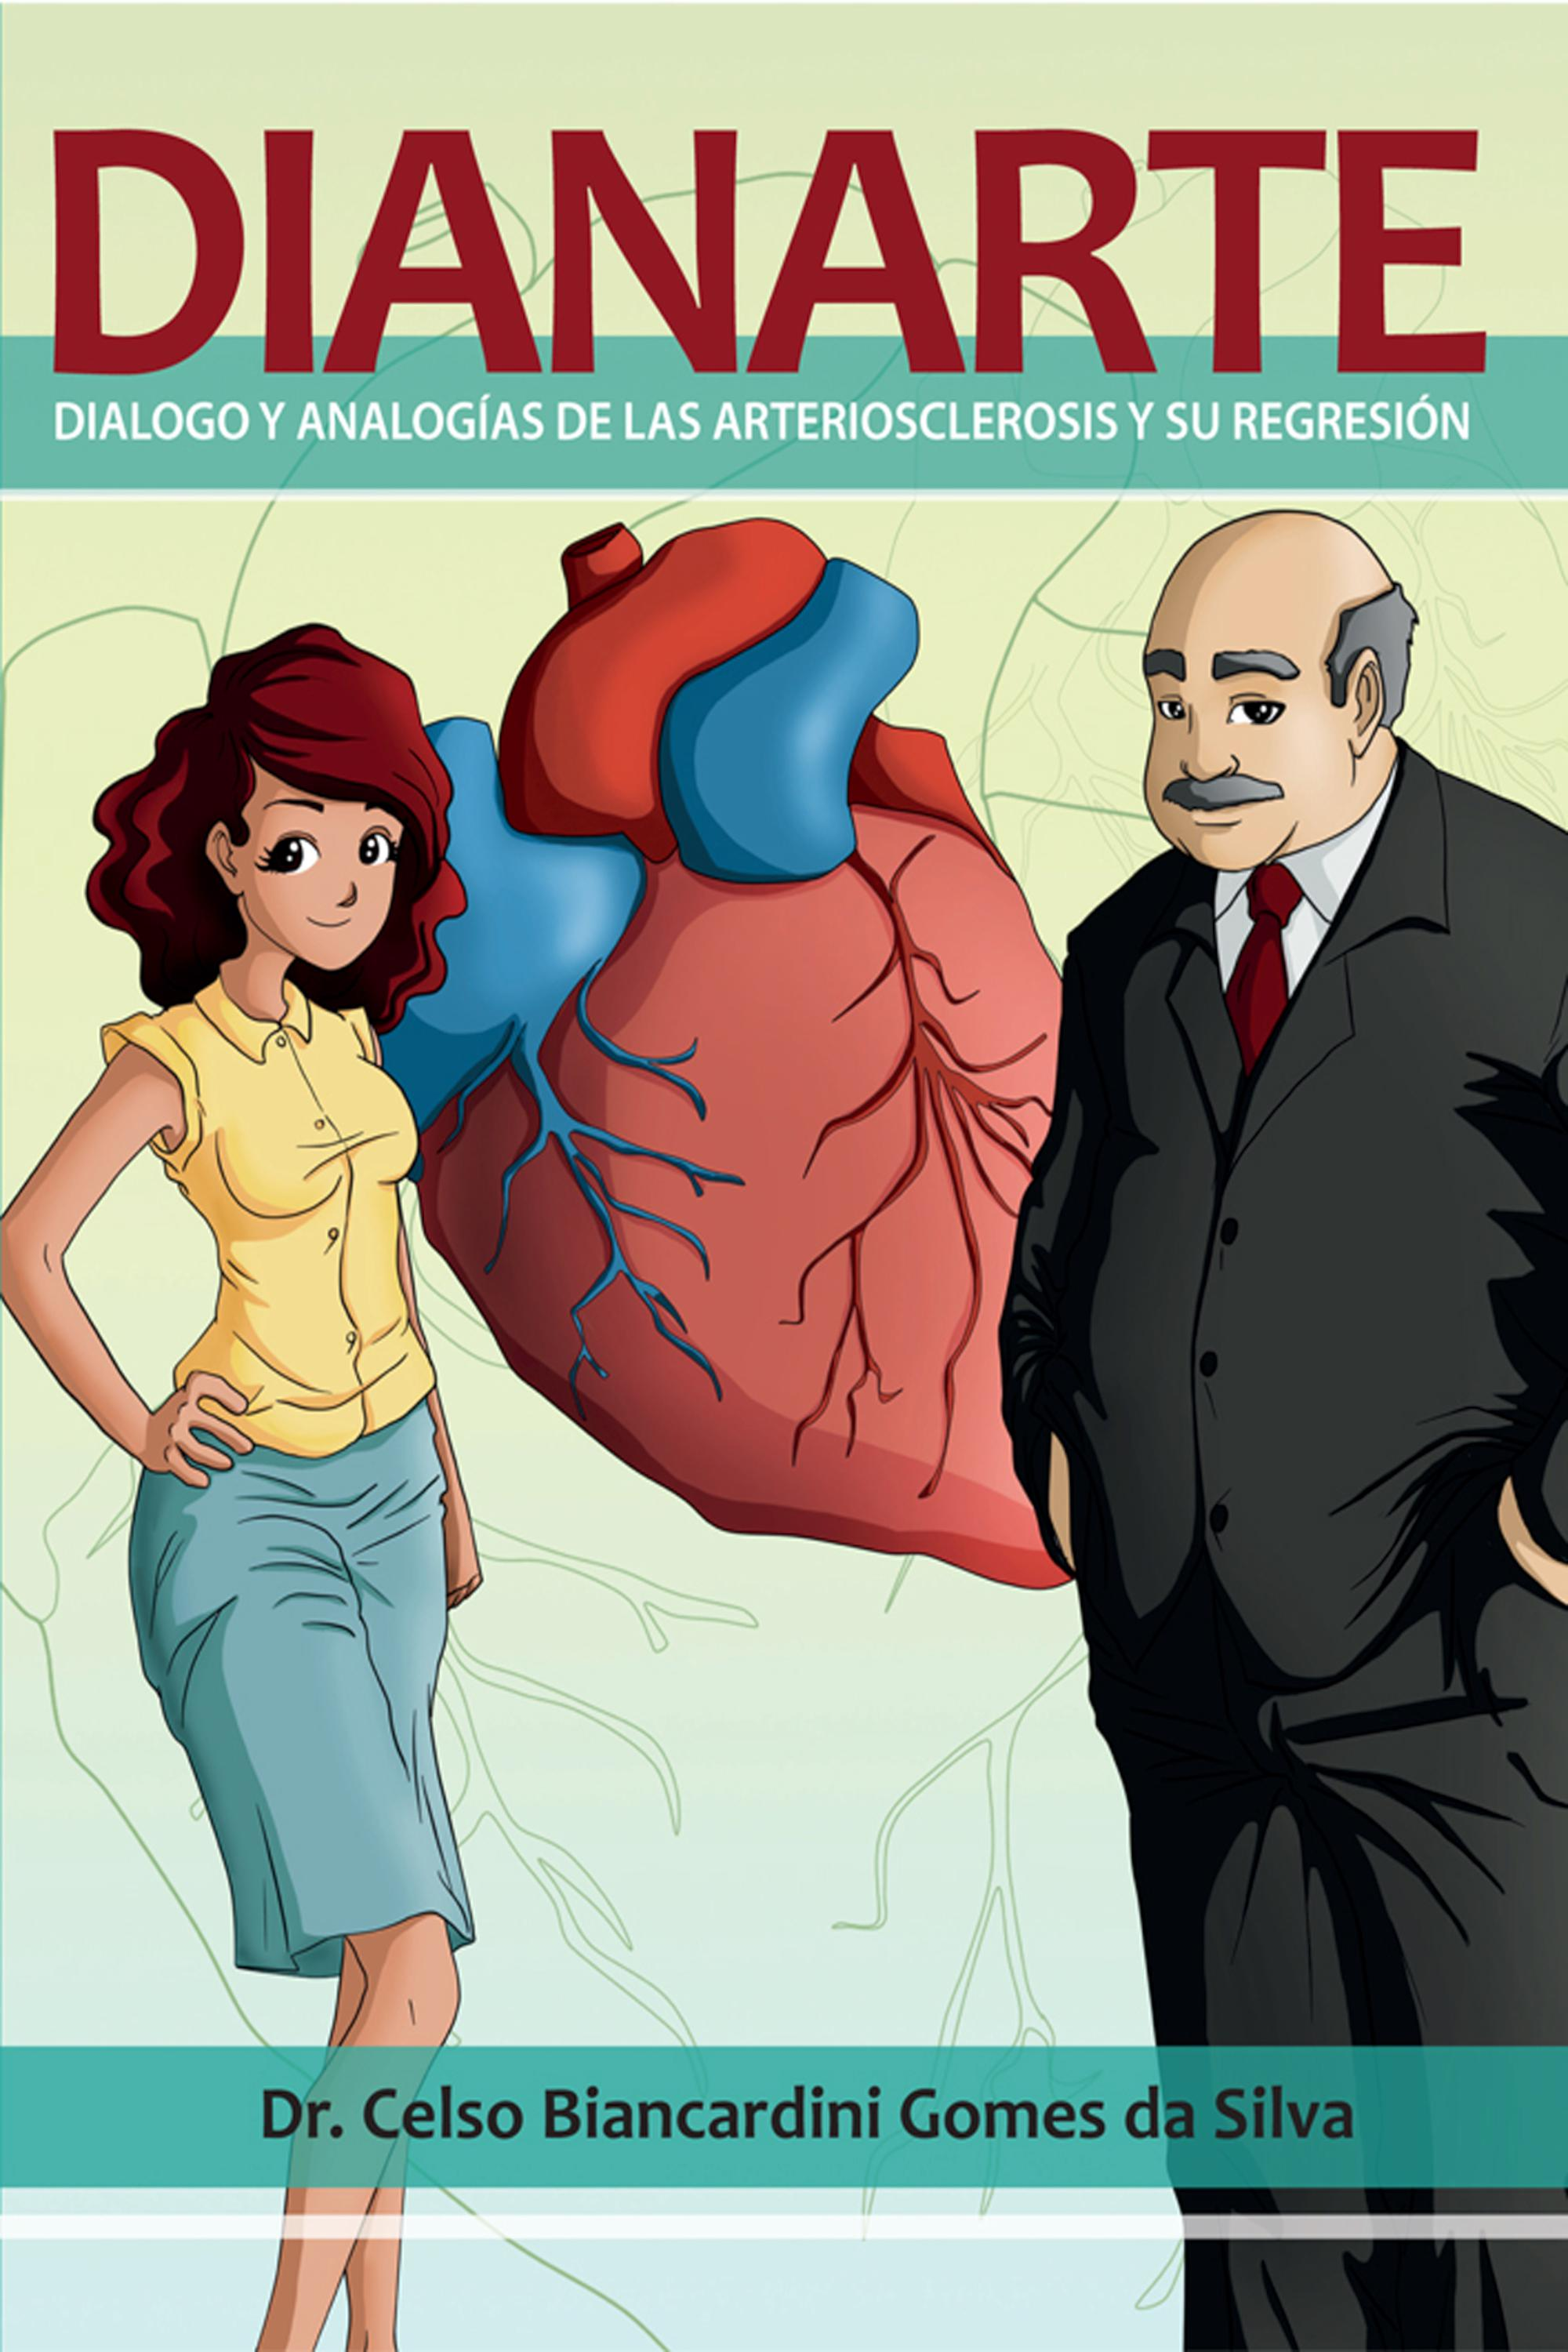 Capa do ebook DIANARTE-DIALOGO Y ANALOGIAS DE LAS ARTERIOSCLEROSIS Y SU REGRESION